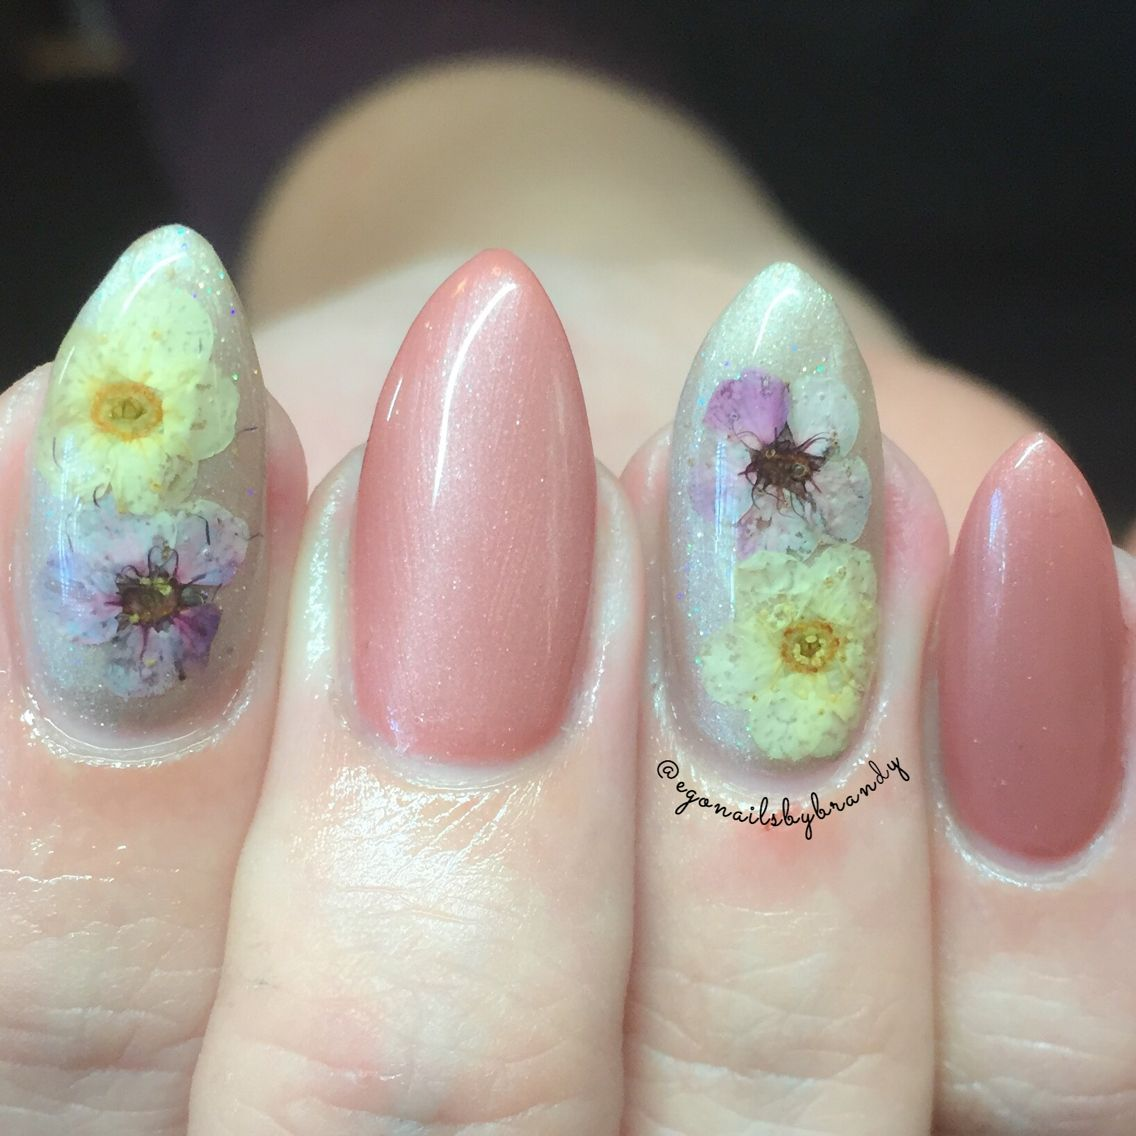 Encapsulated dried flowers close up | Nails by Me! | Pinterest ...